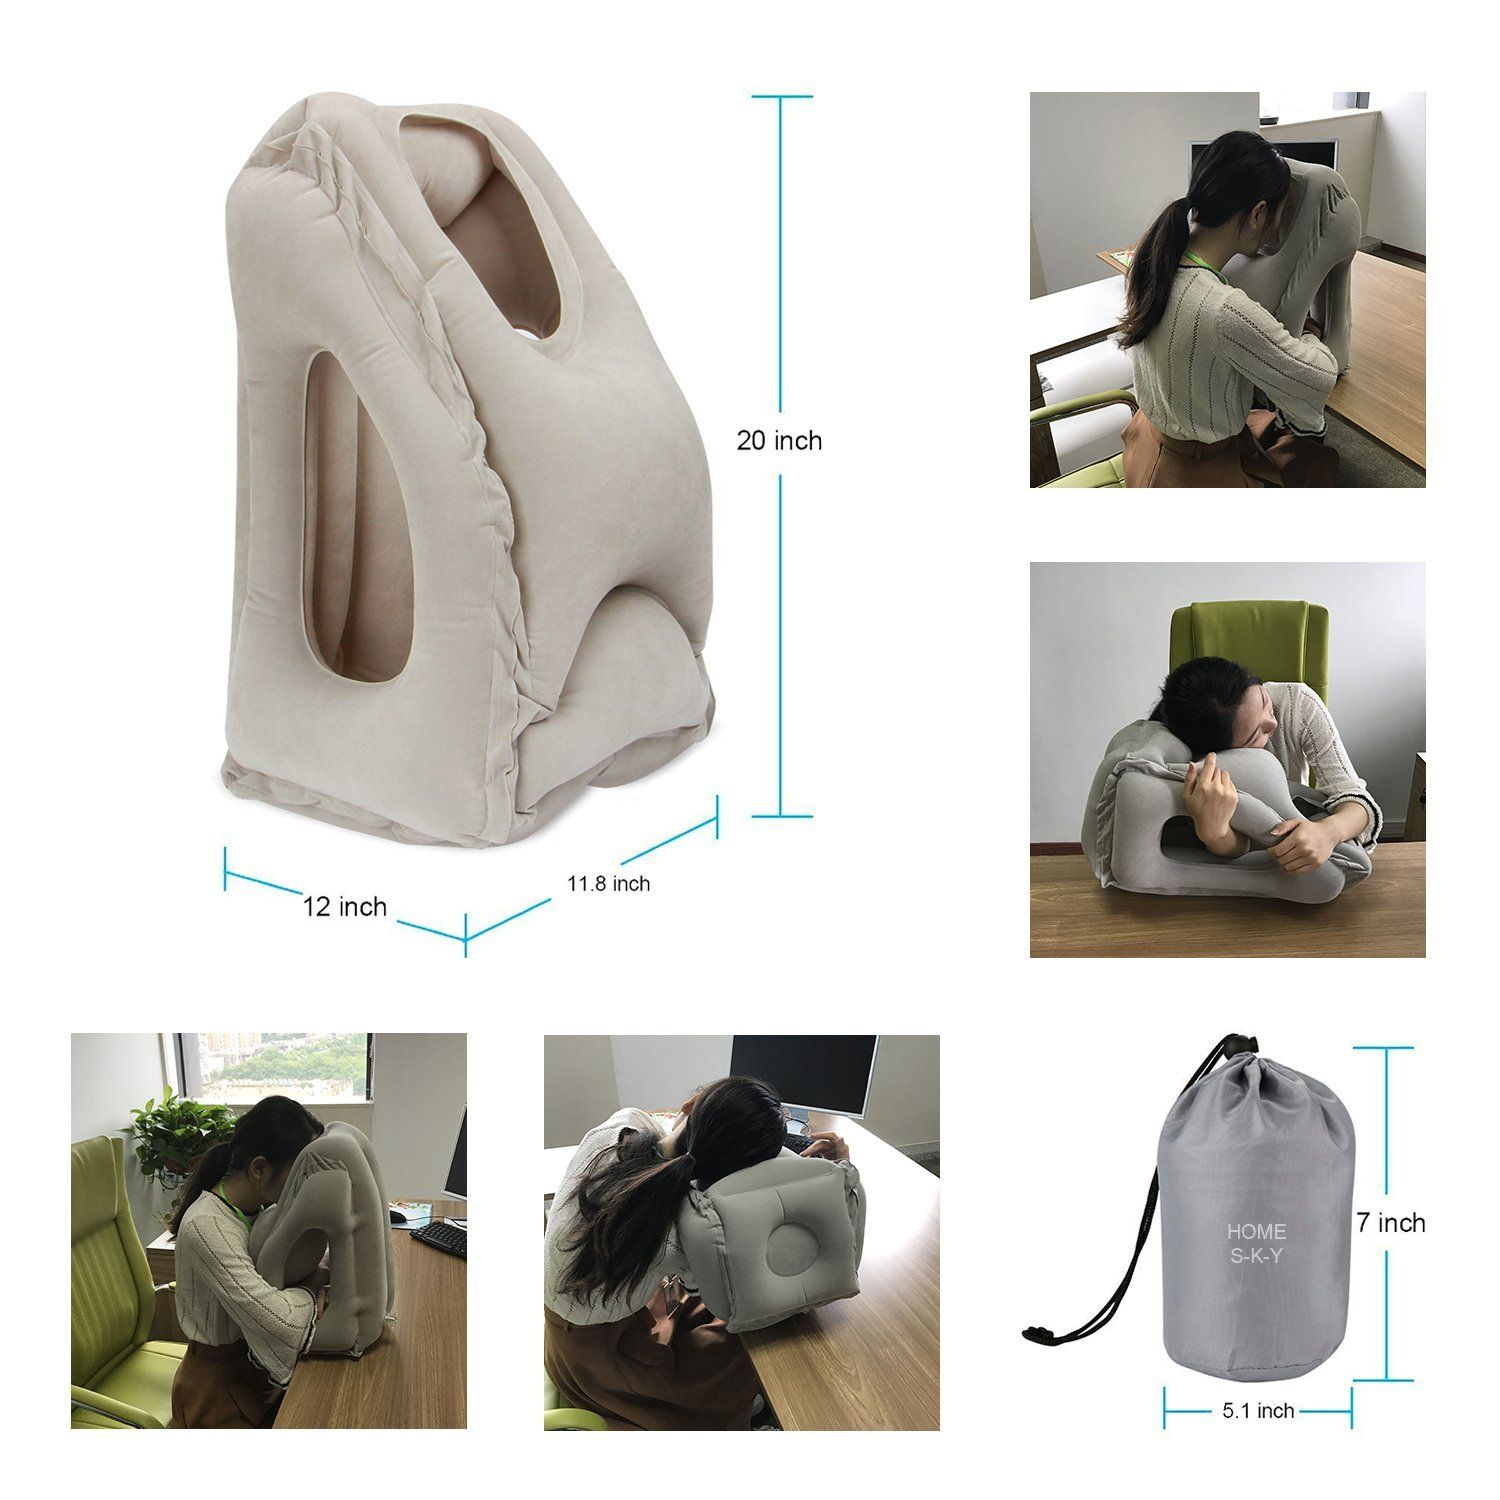 airplane soft washable cover packsack itm and extra self neck with in pump gray inflatable compact daydreamer pillow travel built caribiner